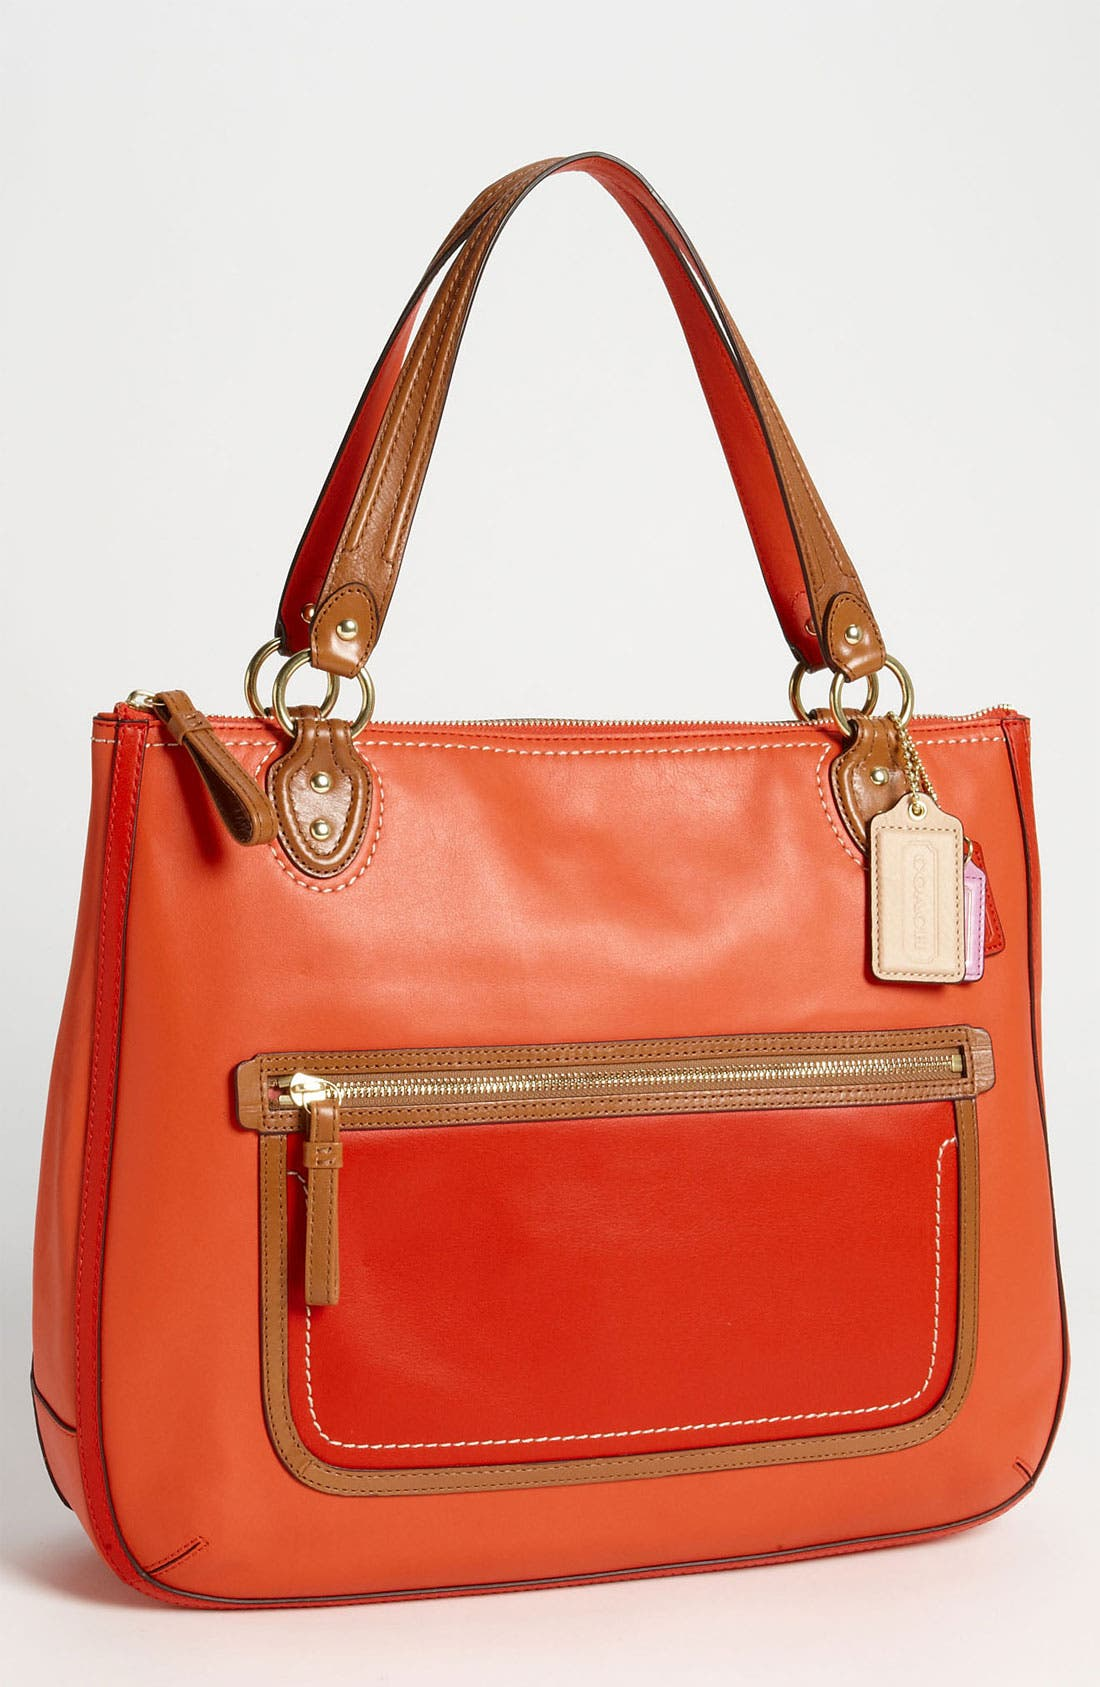 Main Image - COACH 'Poppy Colorblock' Leather Tote